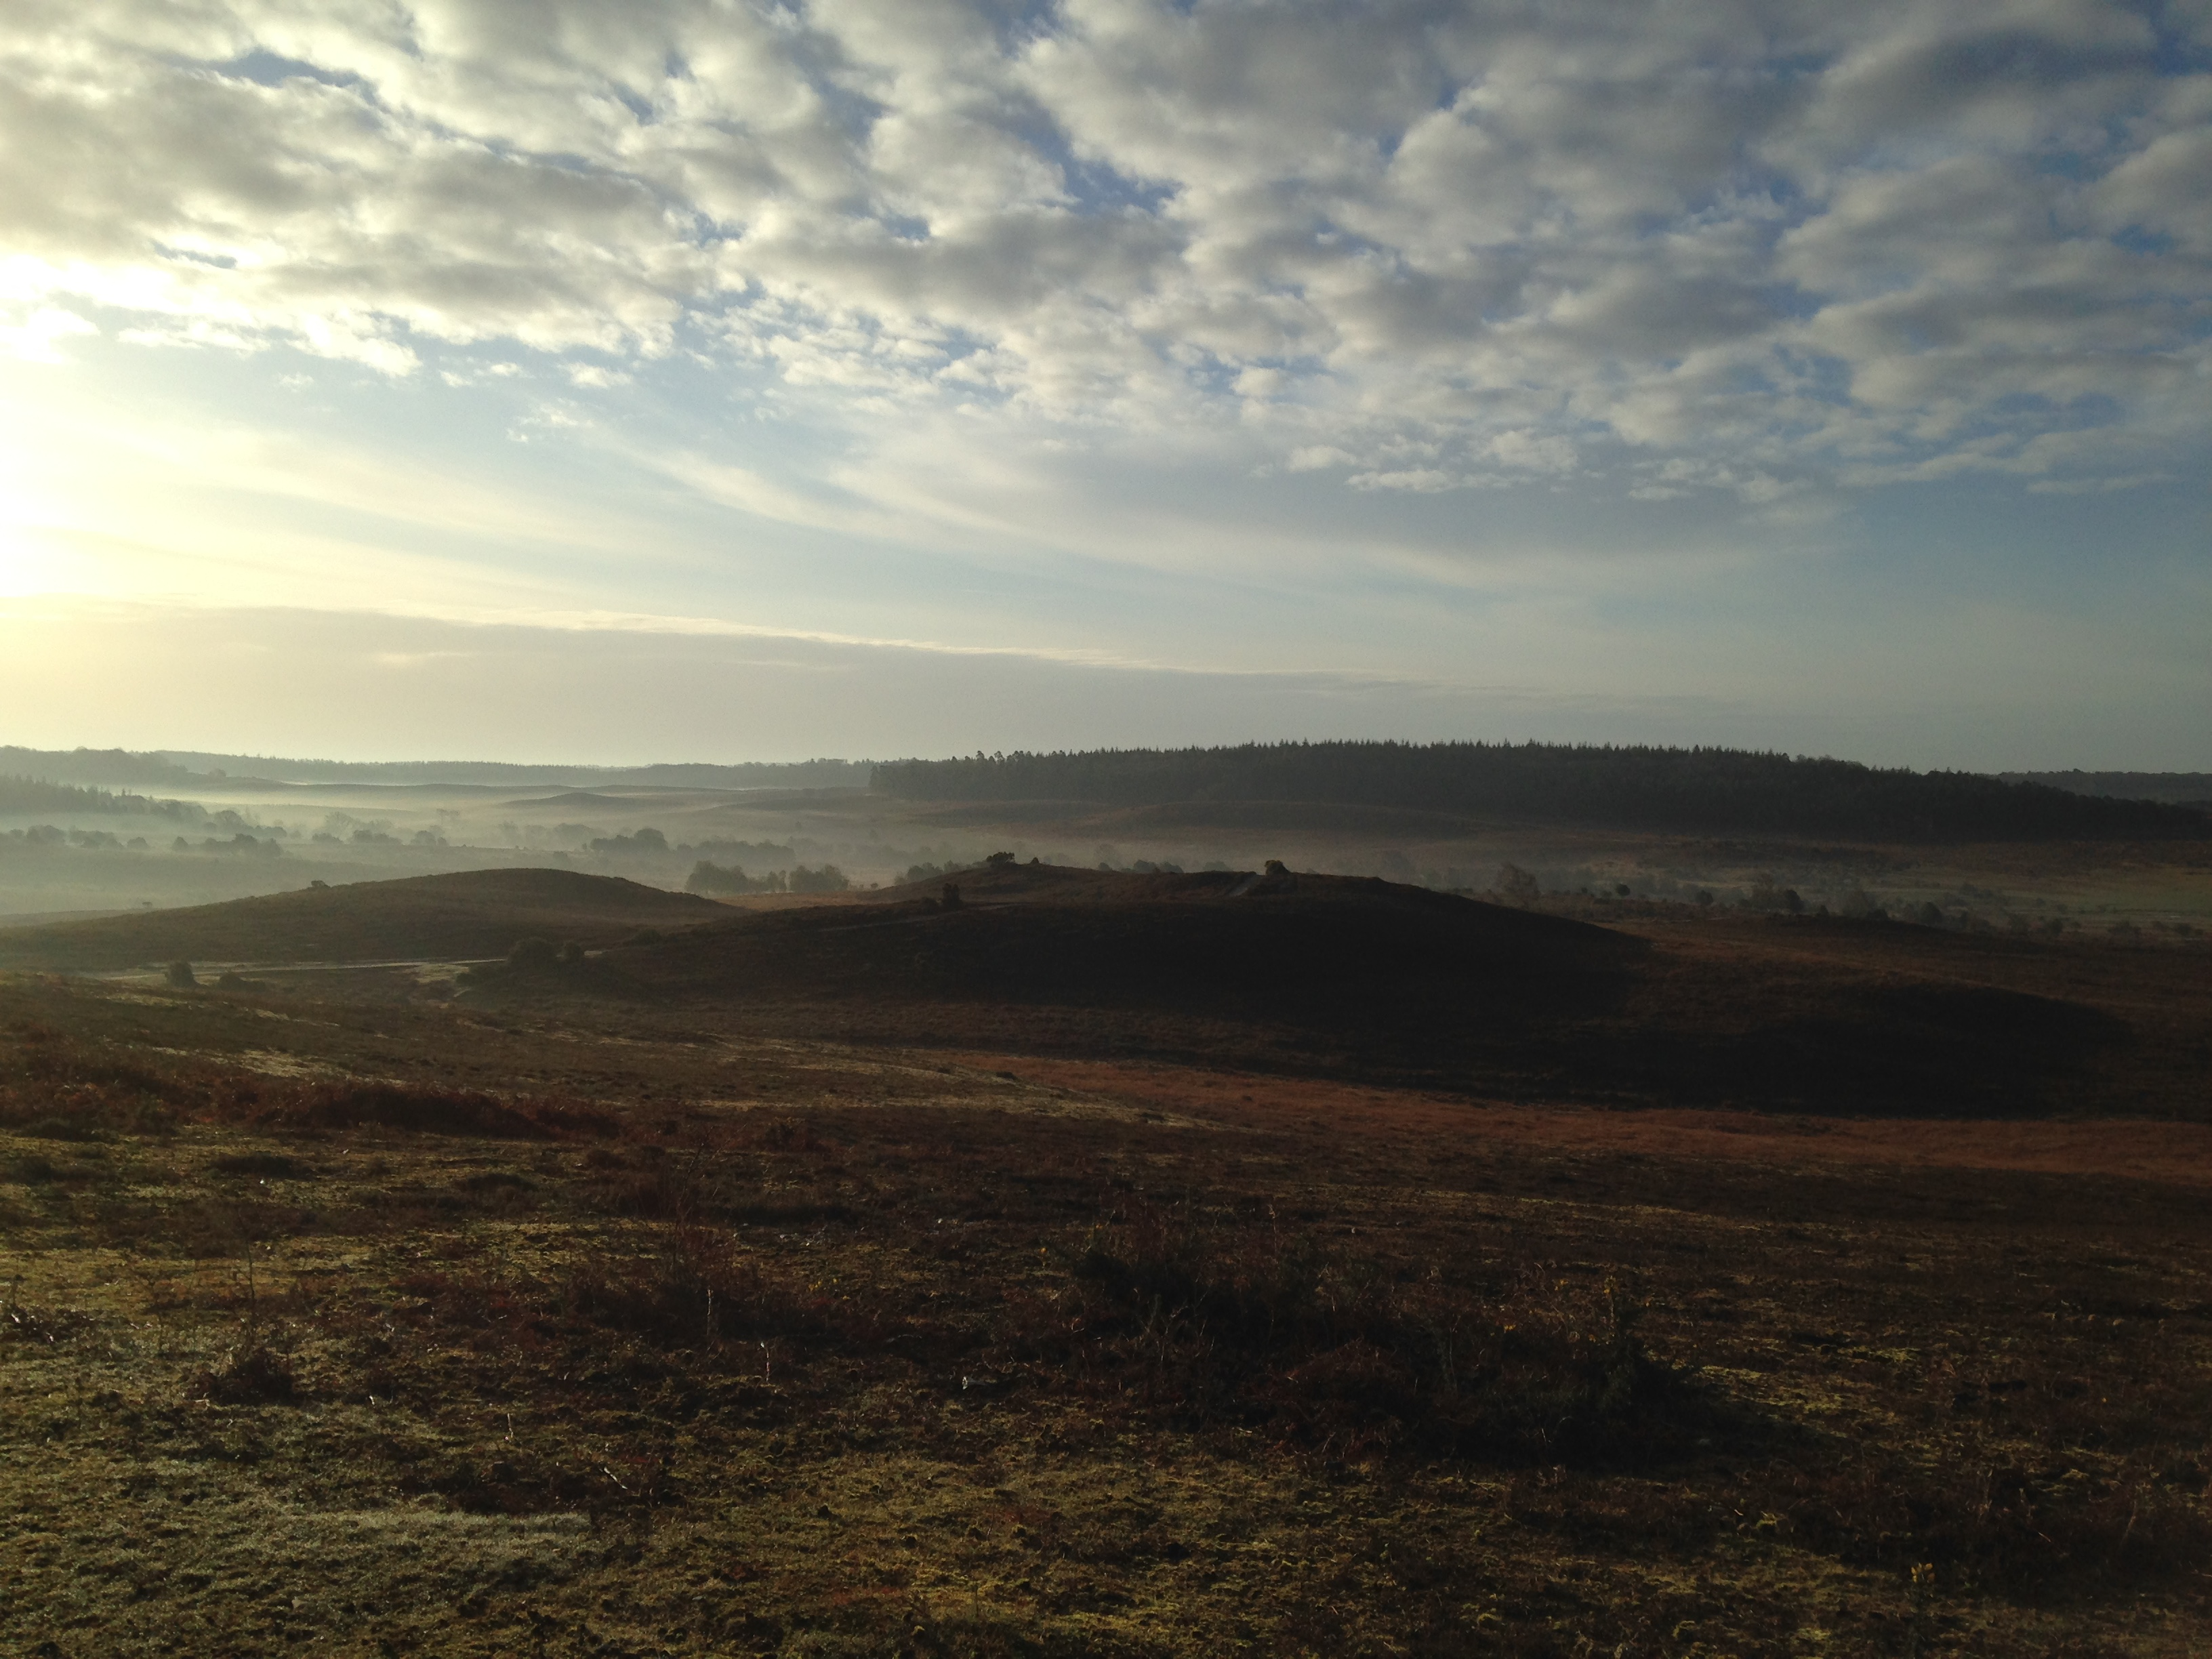 The New Forest swathed in dawn mist is a sight that rewards the early risers.